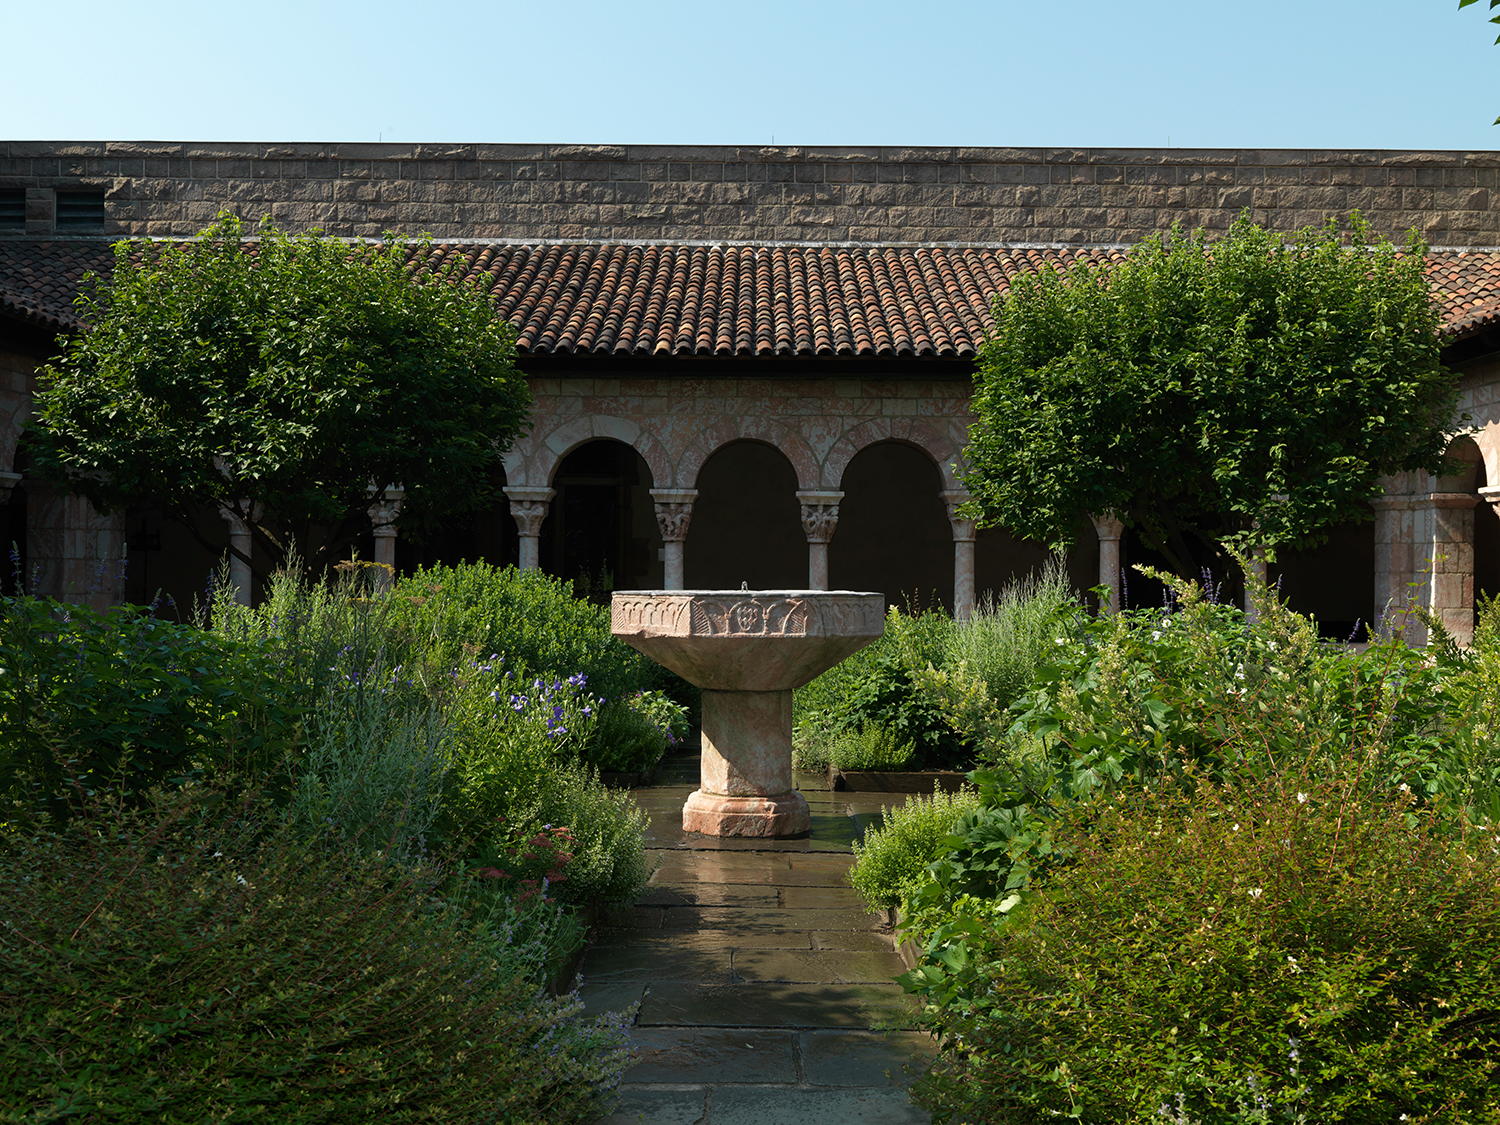 Figure 3: View of the Cuxa Cloister at the Cloisters Museum in New York City. From the Benedictine monastery of Saint-Michel-de-Cuxa (San Miguel de Cuixà), near Perpignan, France, ca. 1130–40. Image © The Metropolitan Museum of Art, New York.